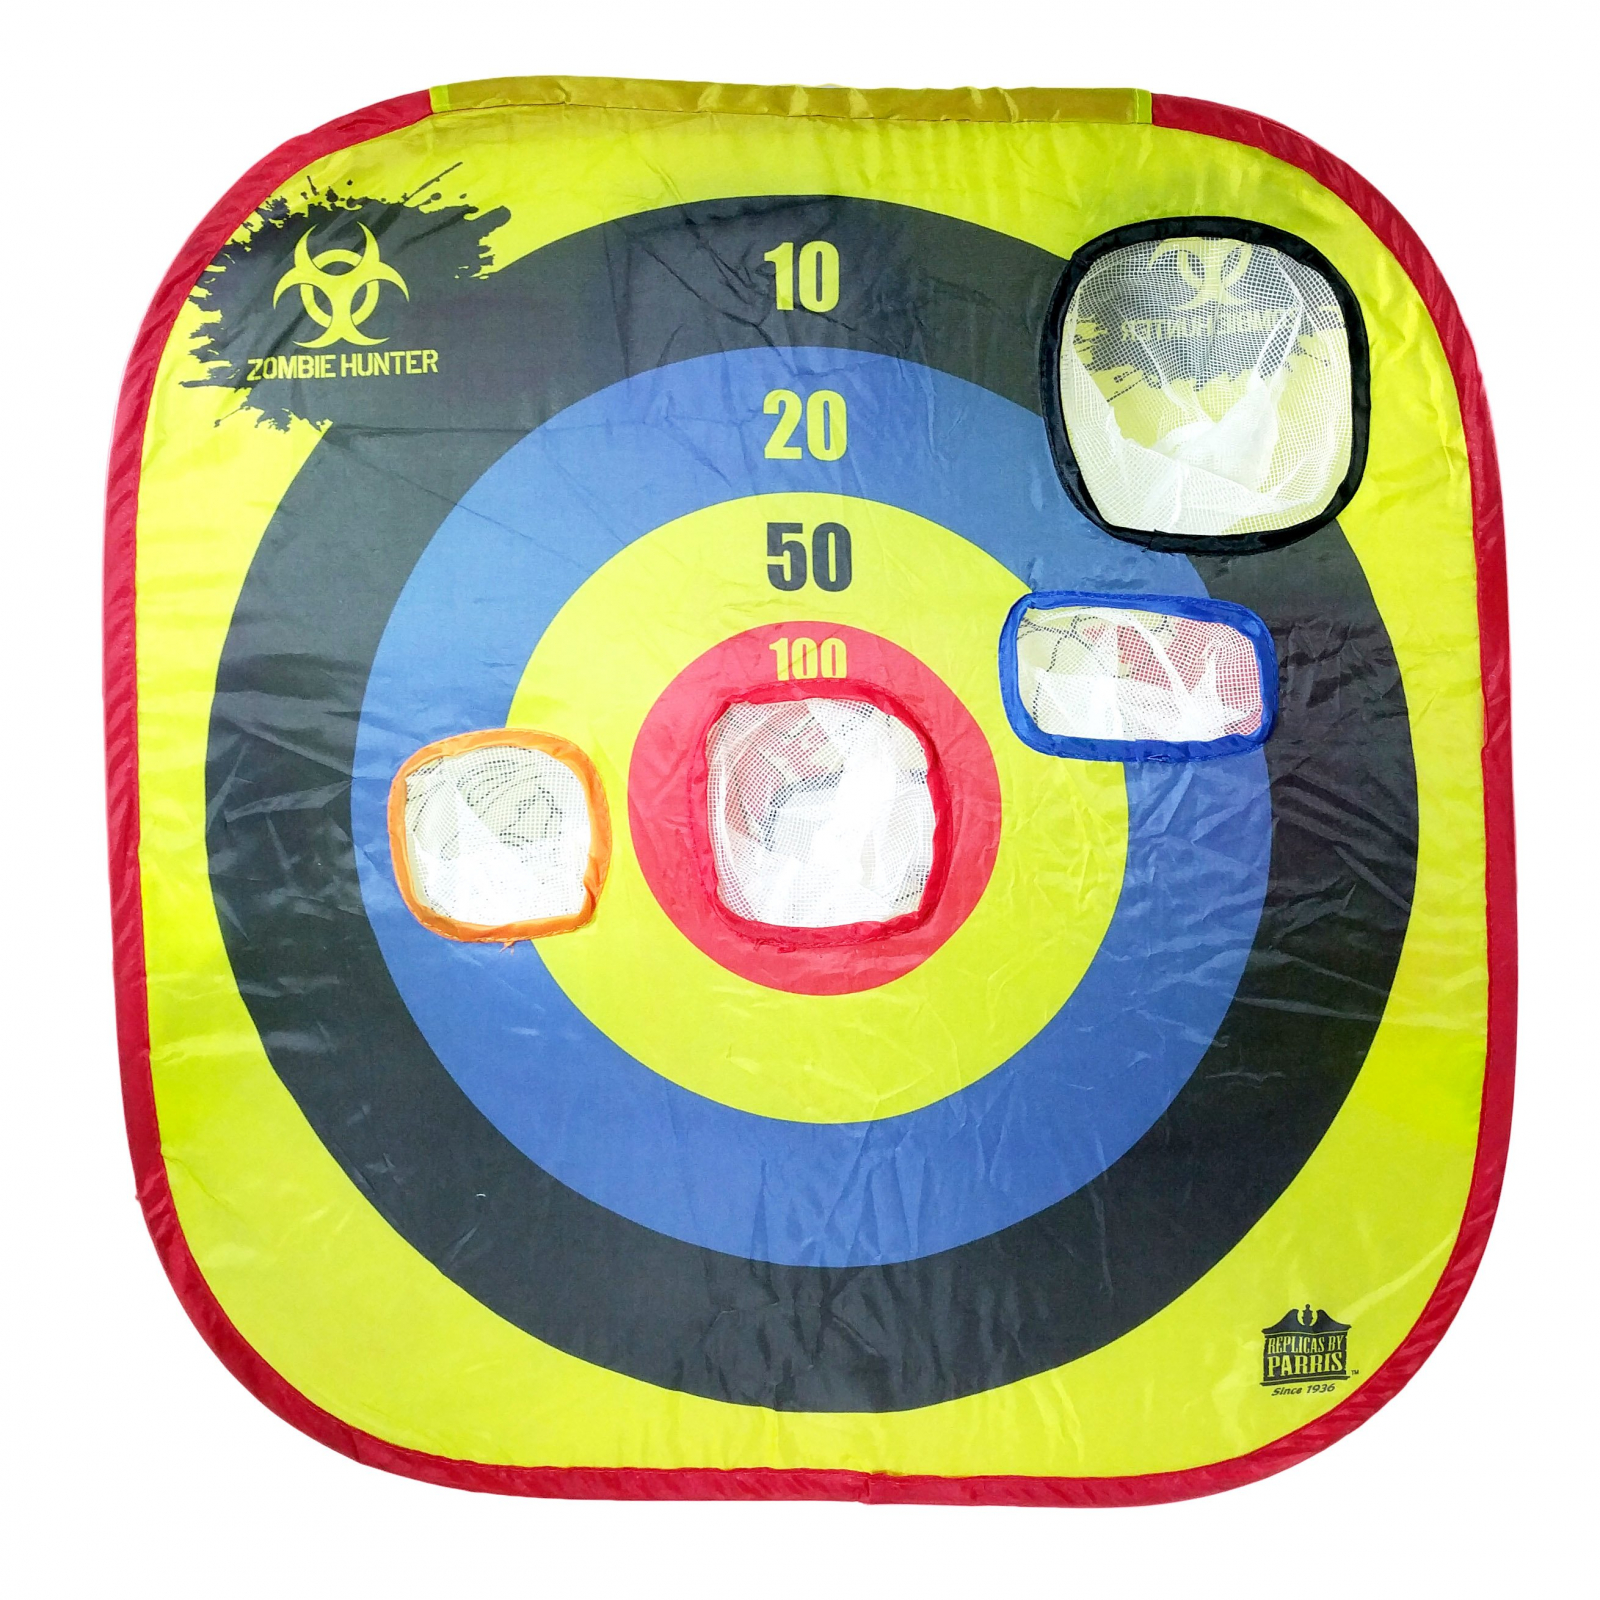 Parris Zombie Hunter Pop Up Target with 20pc Soft Rubber BBs